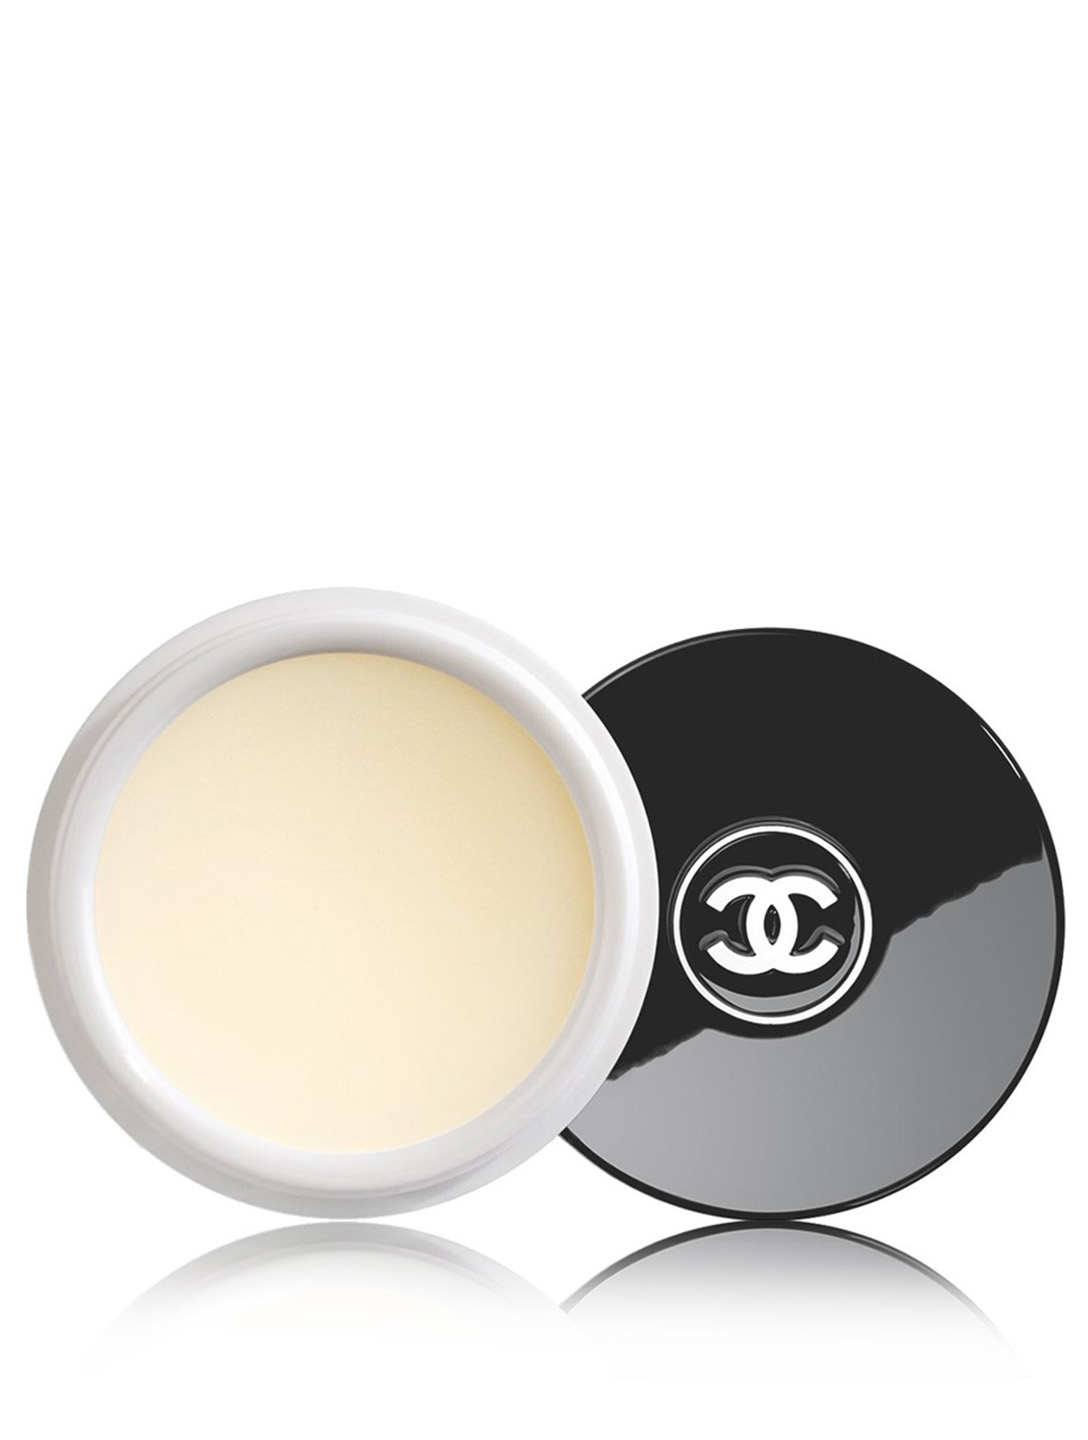 CHANEL Nourishing Lip Care CHANEL